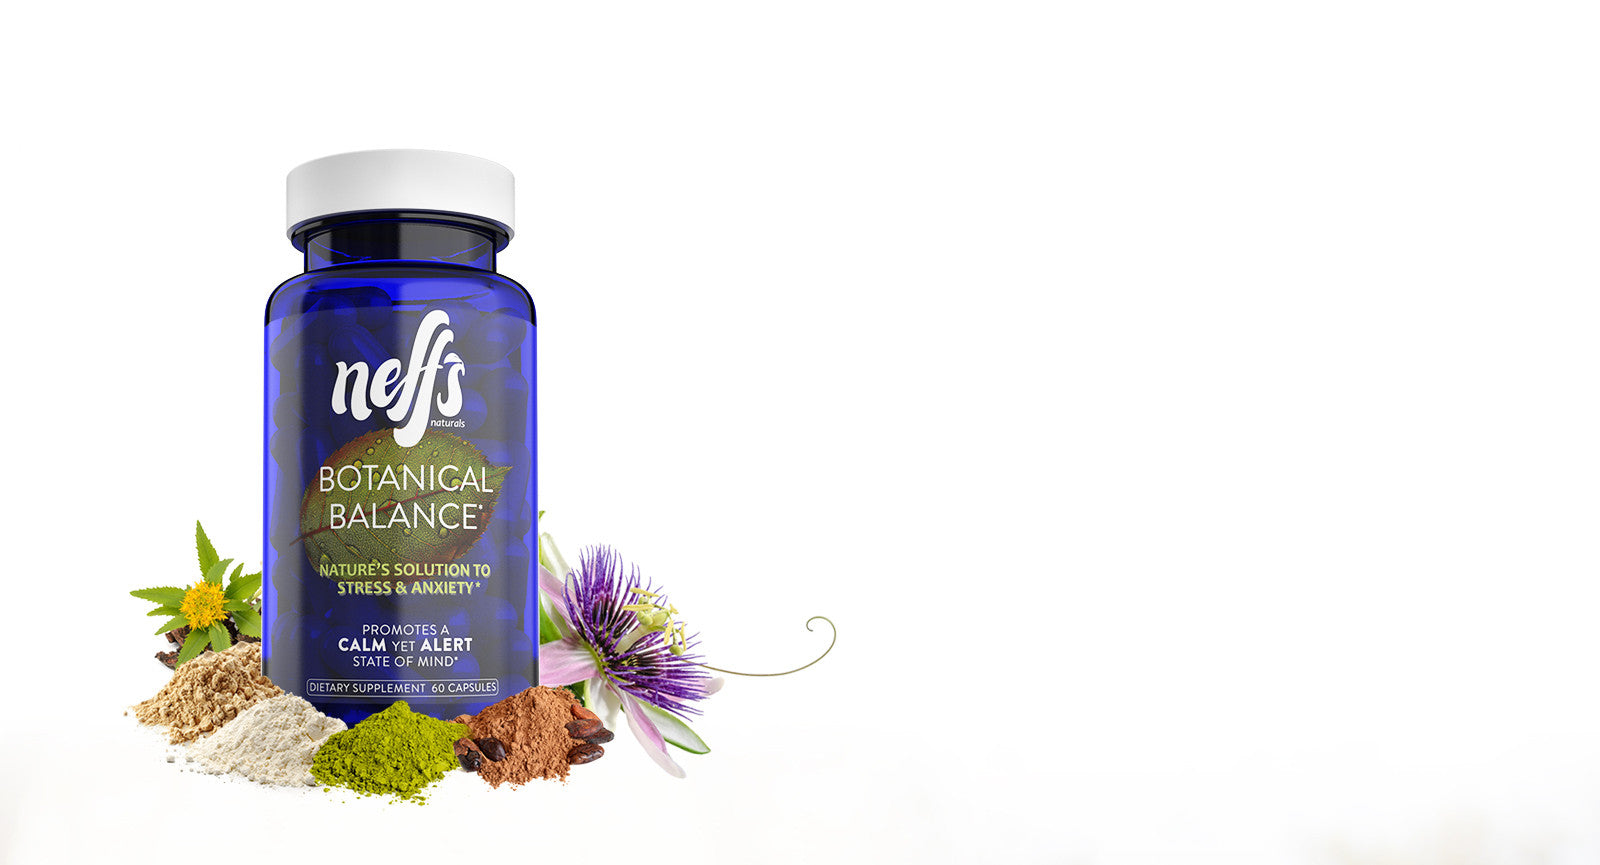 Neffs Naturals botanical balance for Anxiety